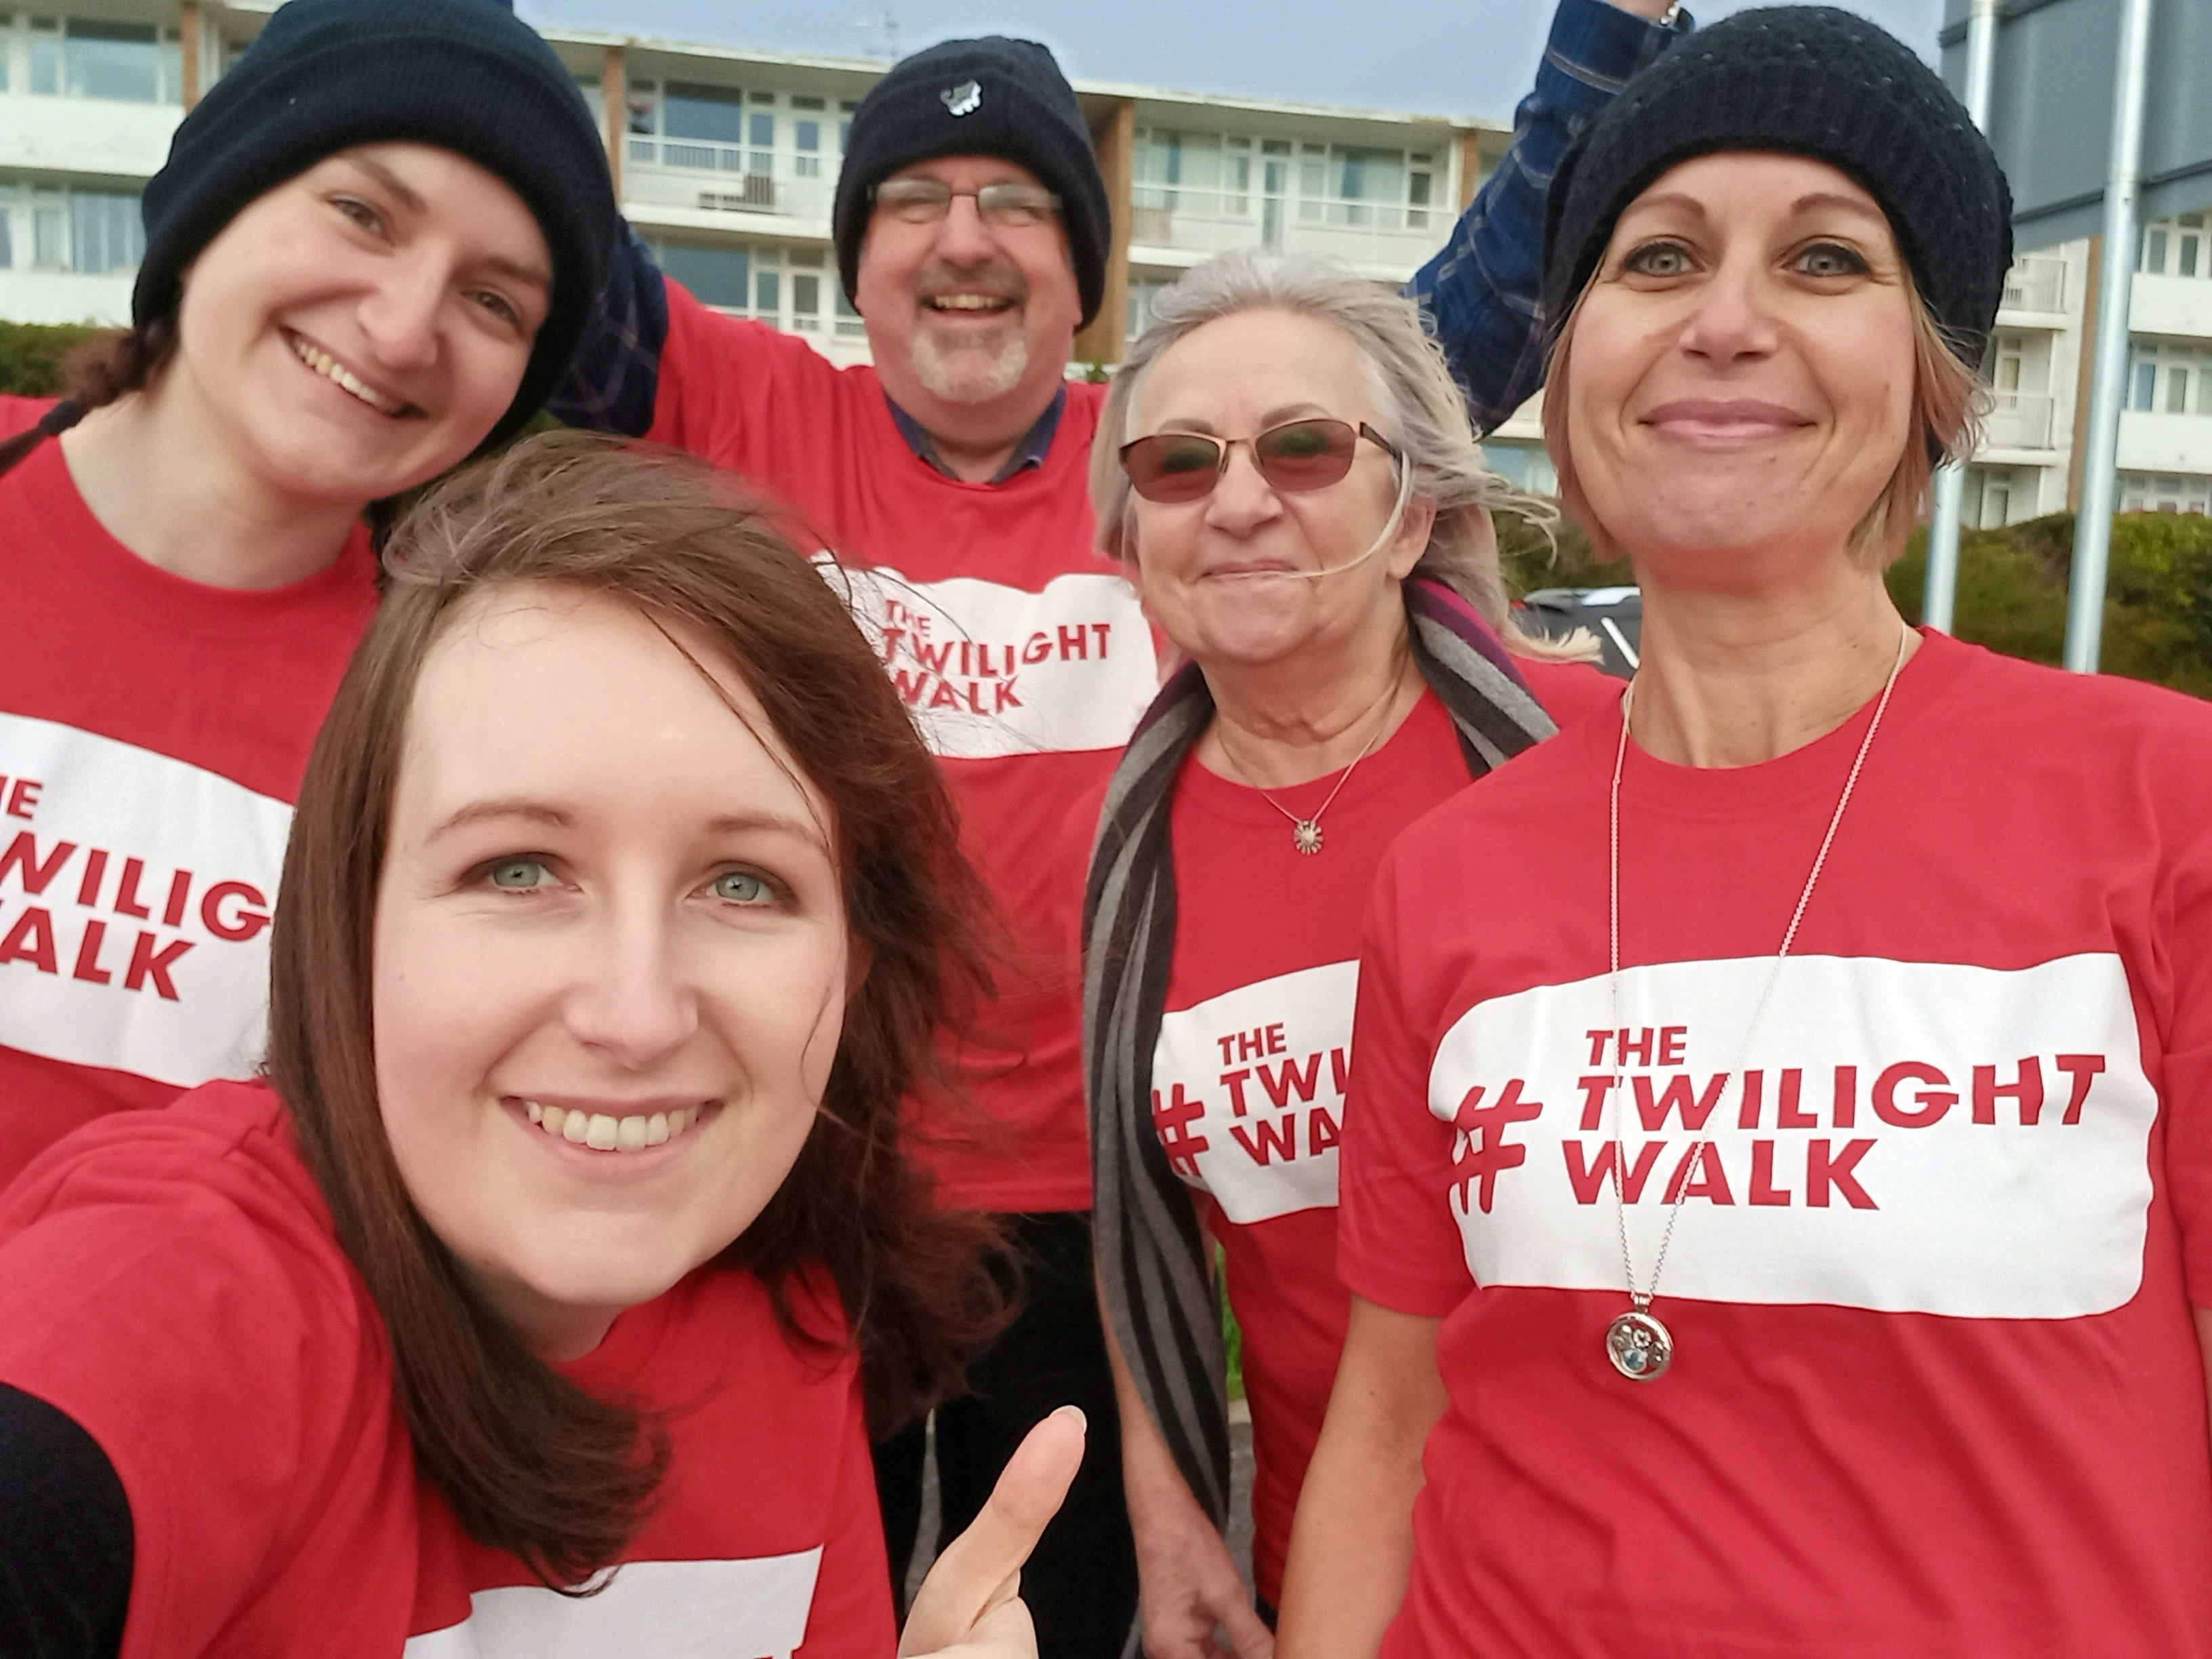 Group selfie of five people taking part in the Twilight Walk together.